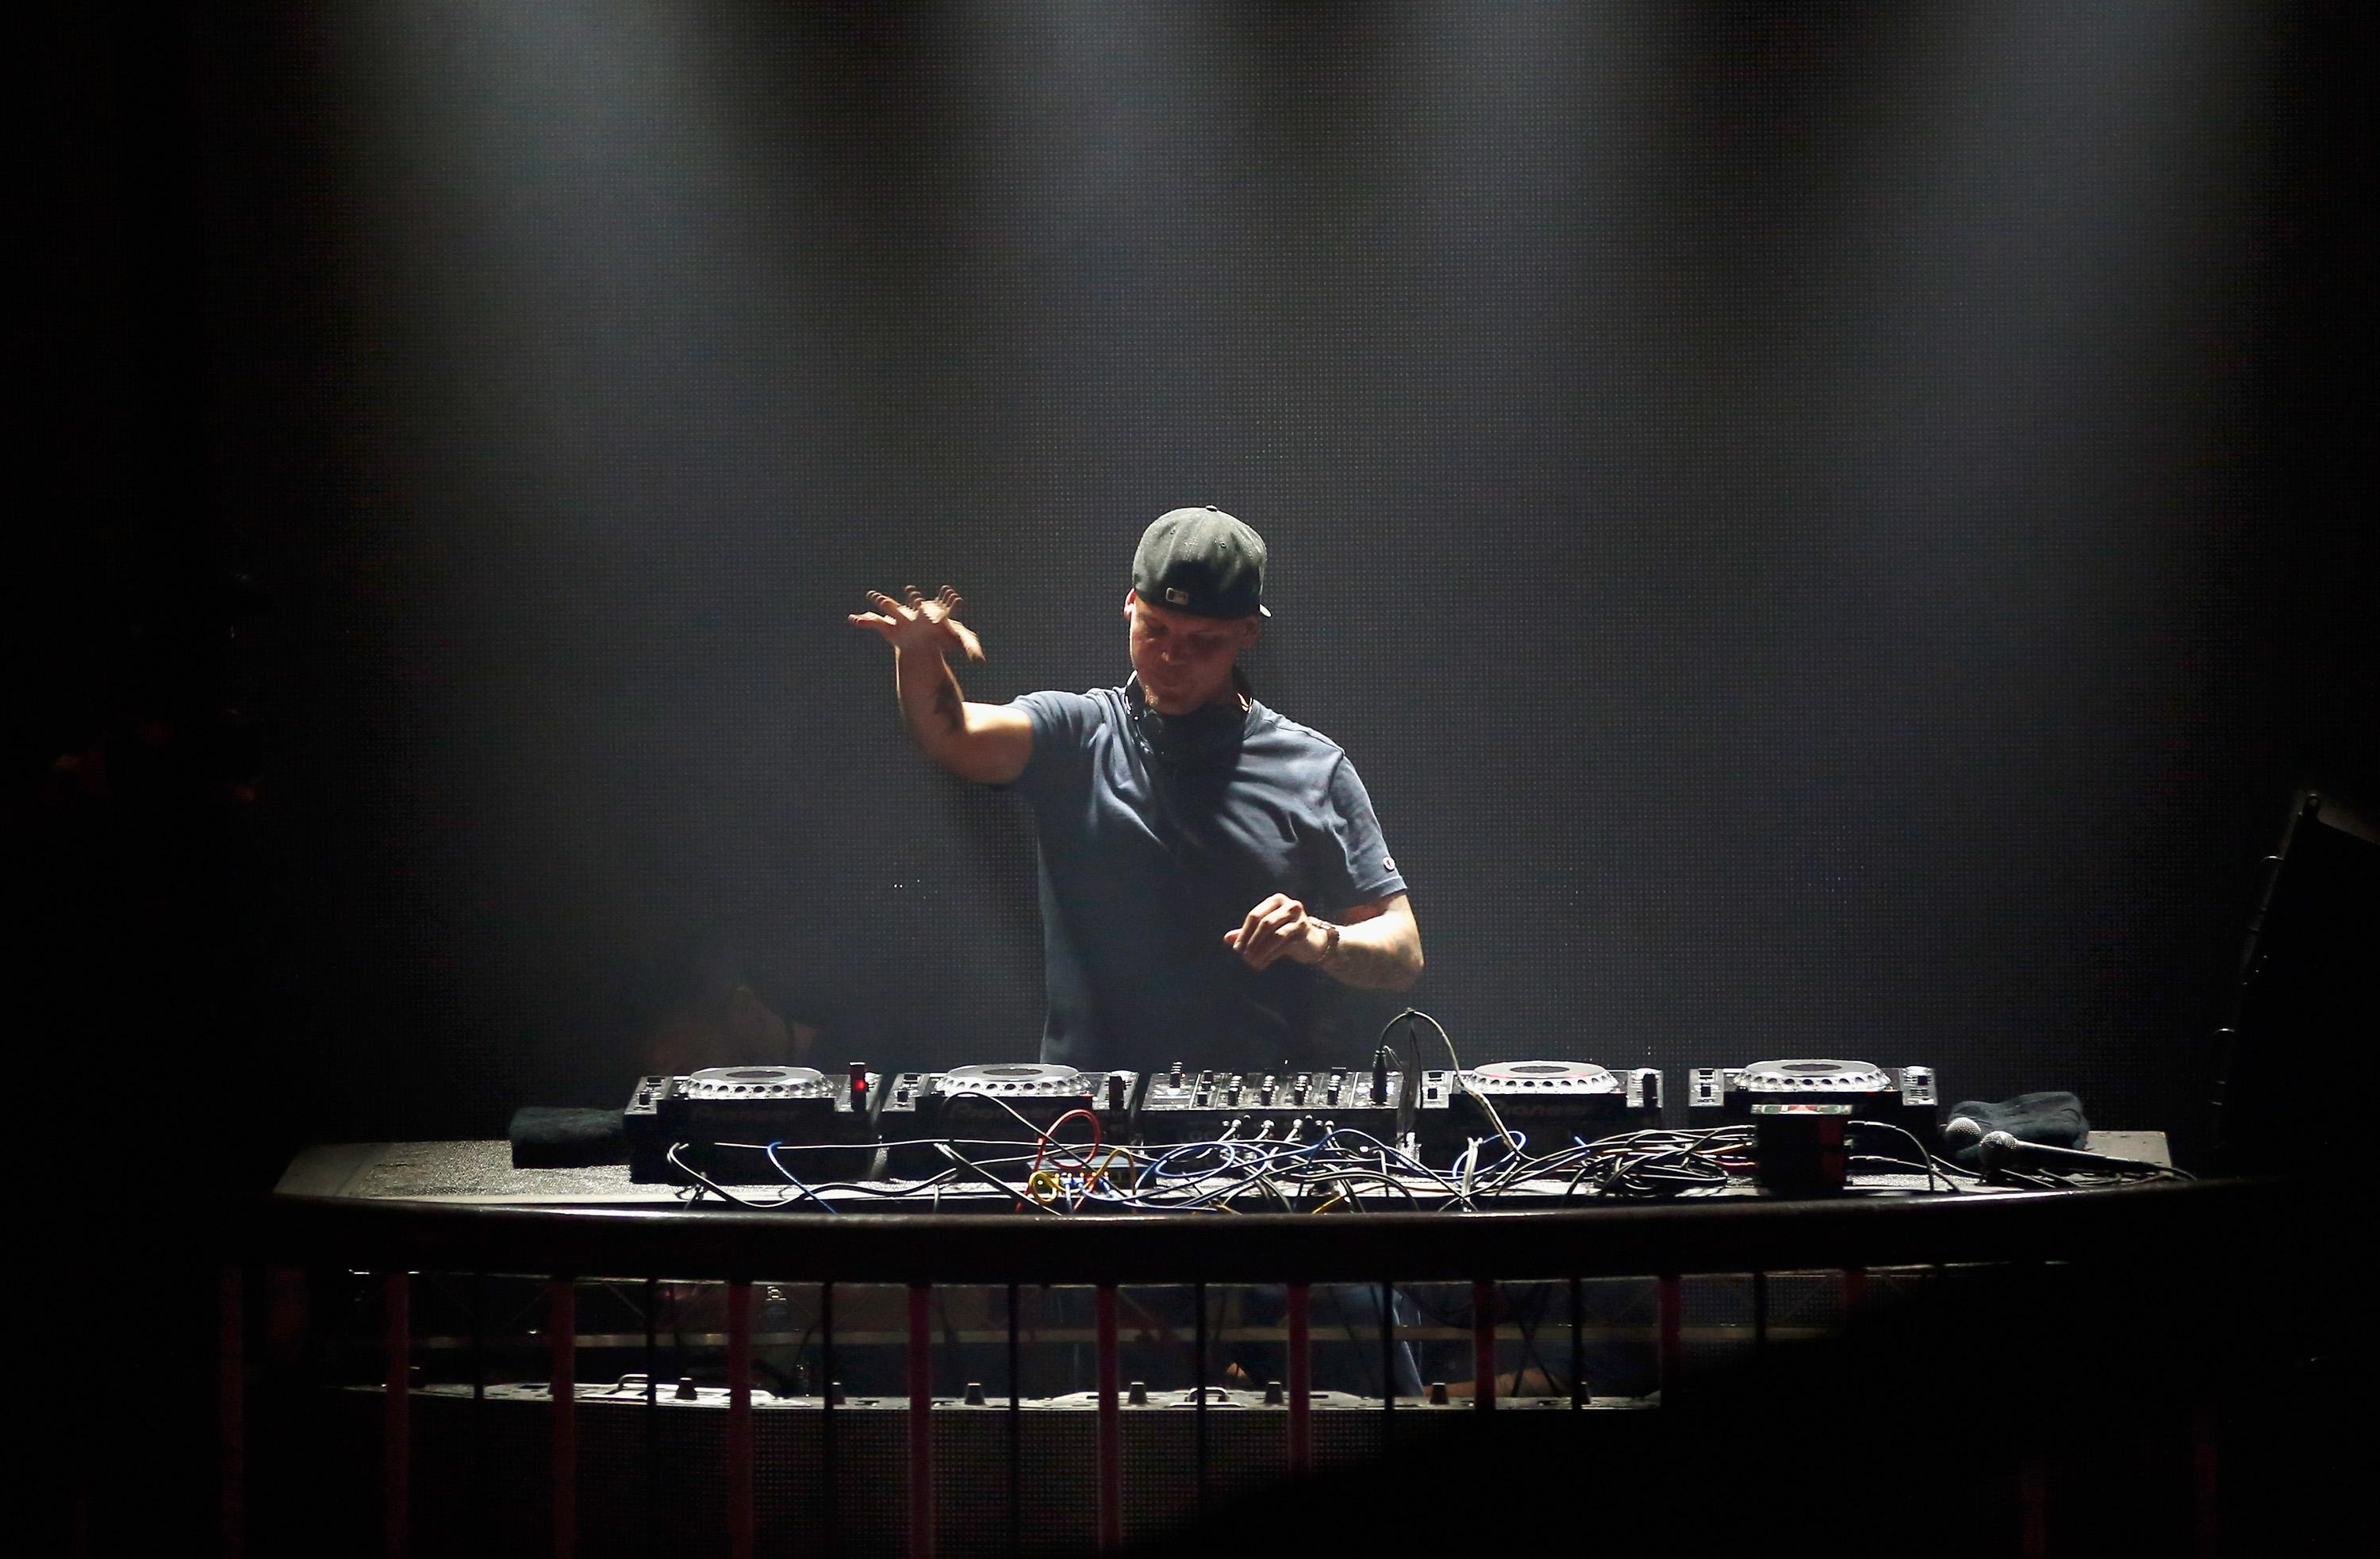 Avicii stands behind a turntable.